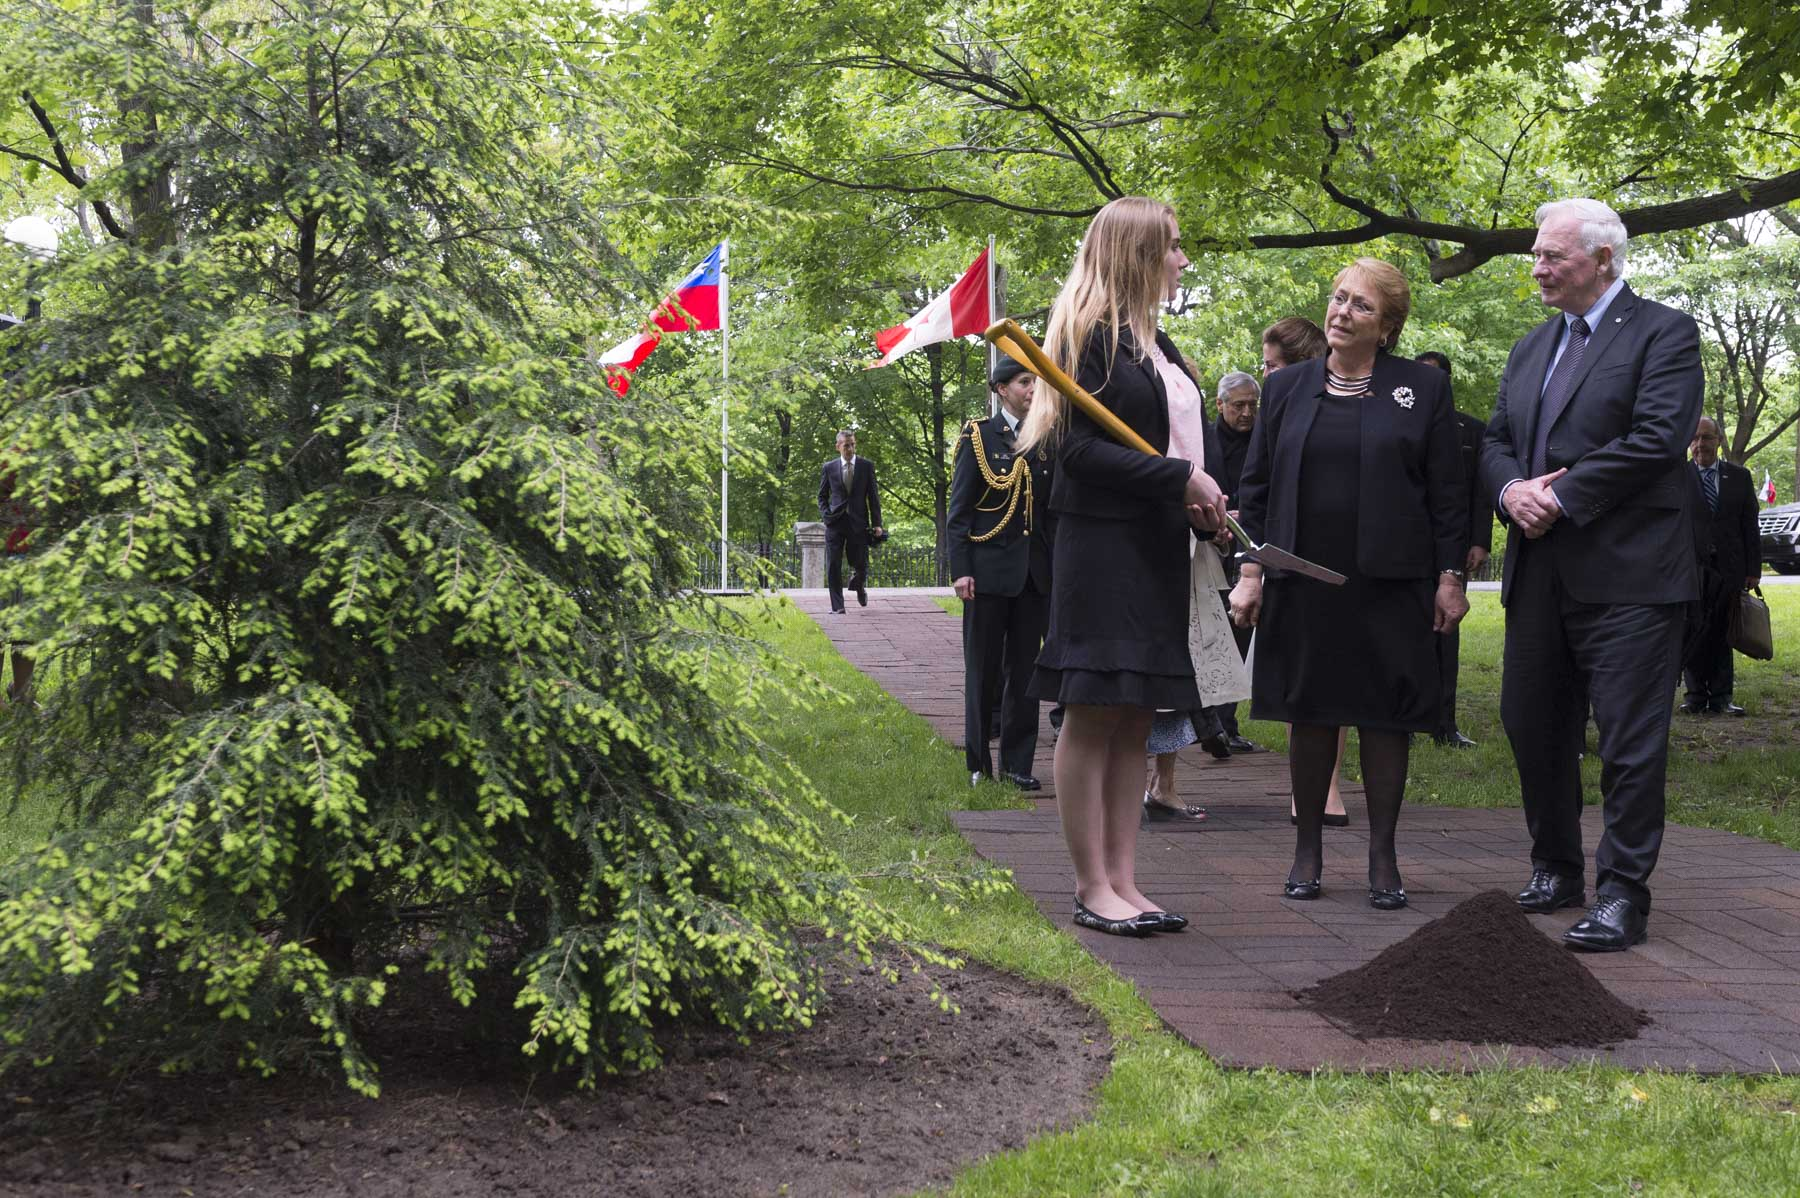 The day ended with the ceremonial tree planting on the grounds of Rideau Hall. Over 140 commemorative trees grace the grounds. They mark visits by members of the Royal Family, heads of State and other dignitaries.